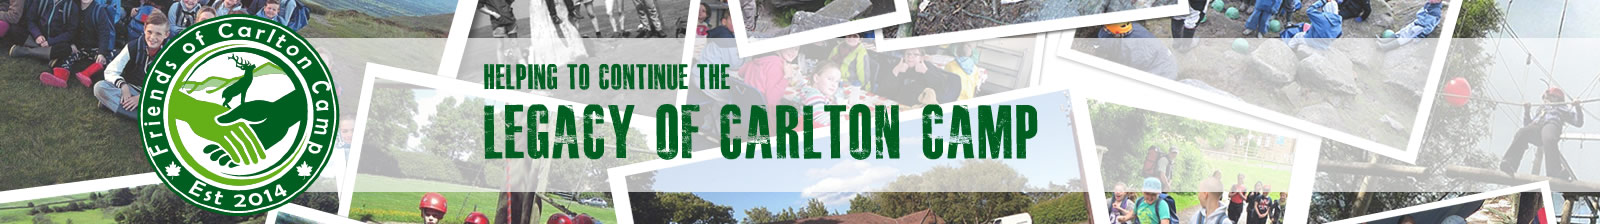 Friends of Carlton Camp